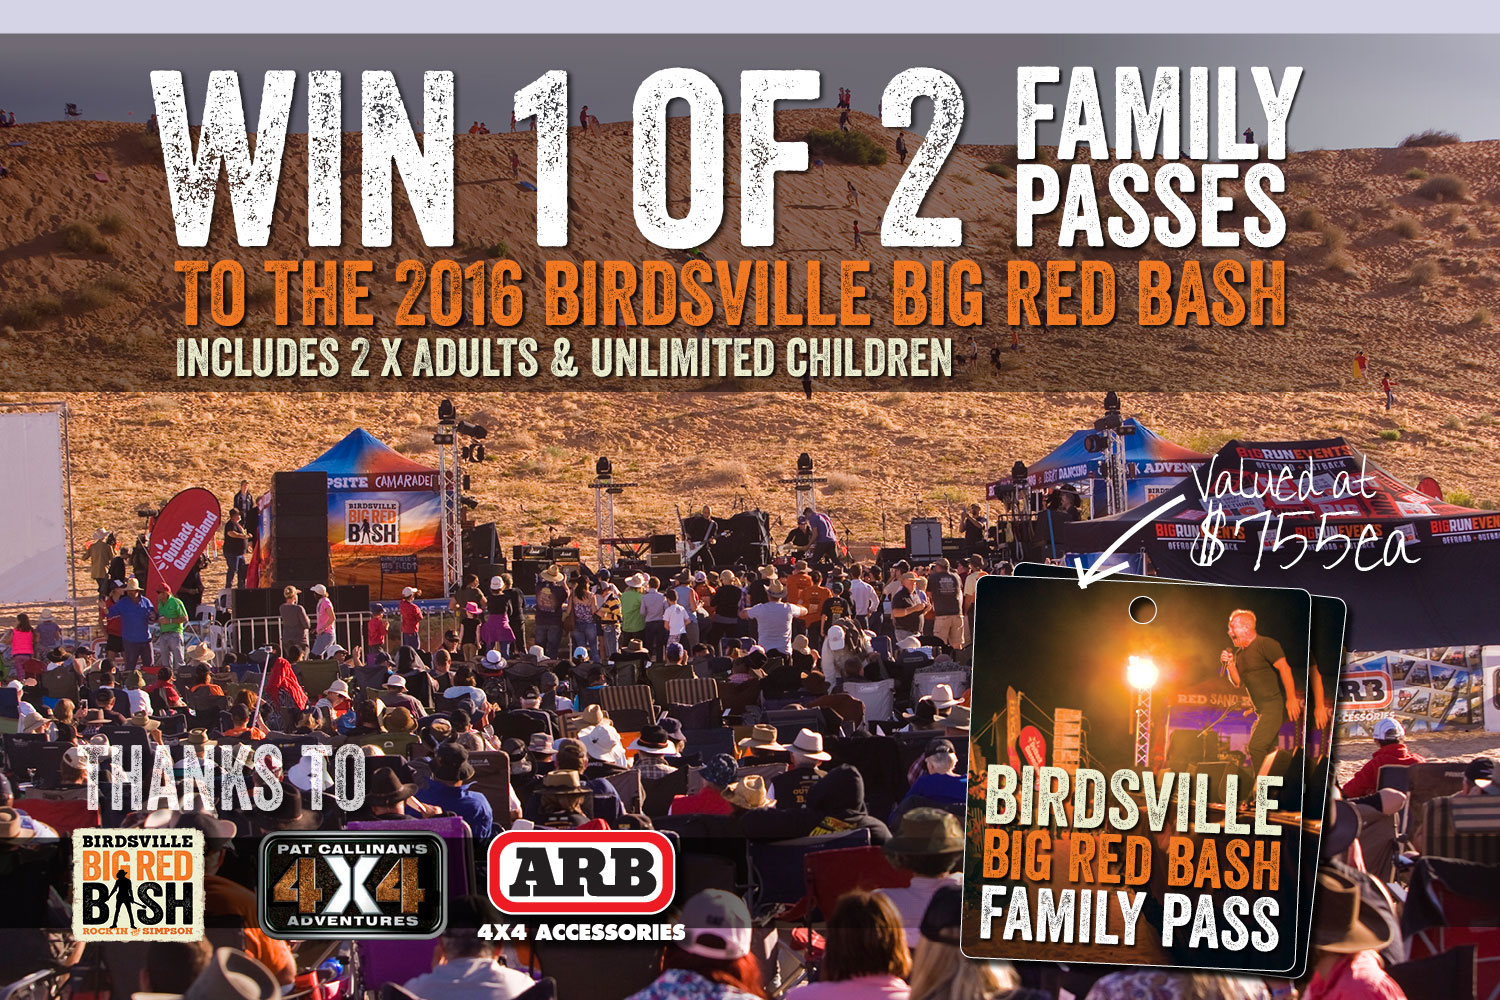 Big Red Bash Family Pass Giveaway